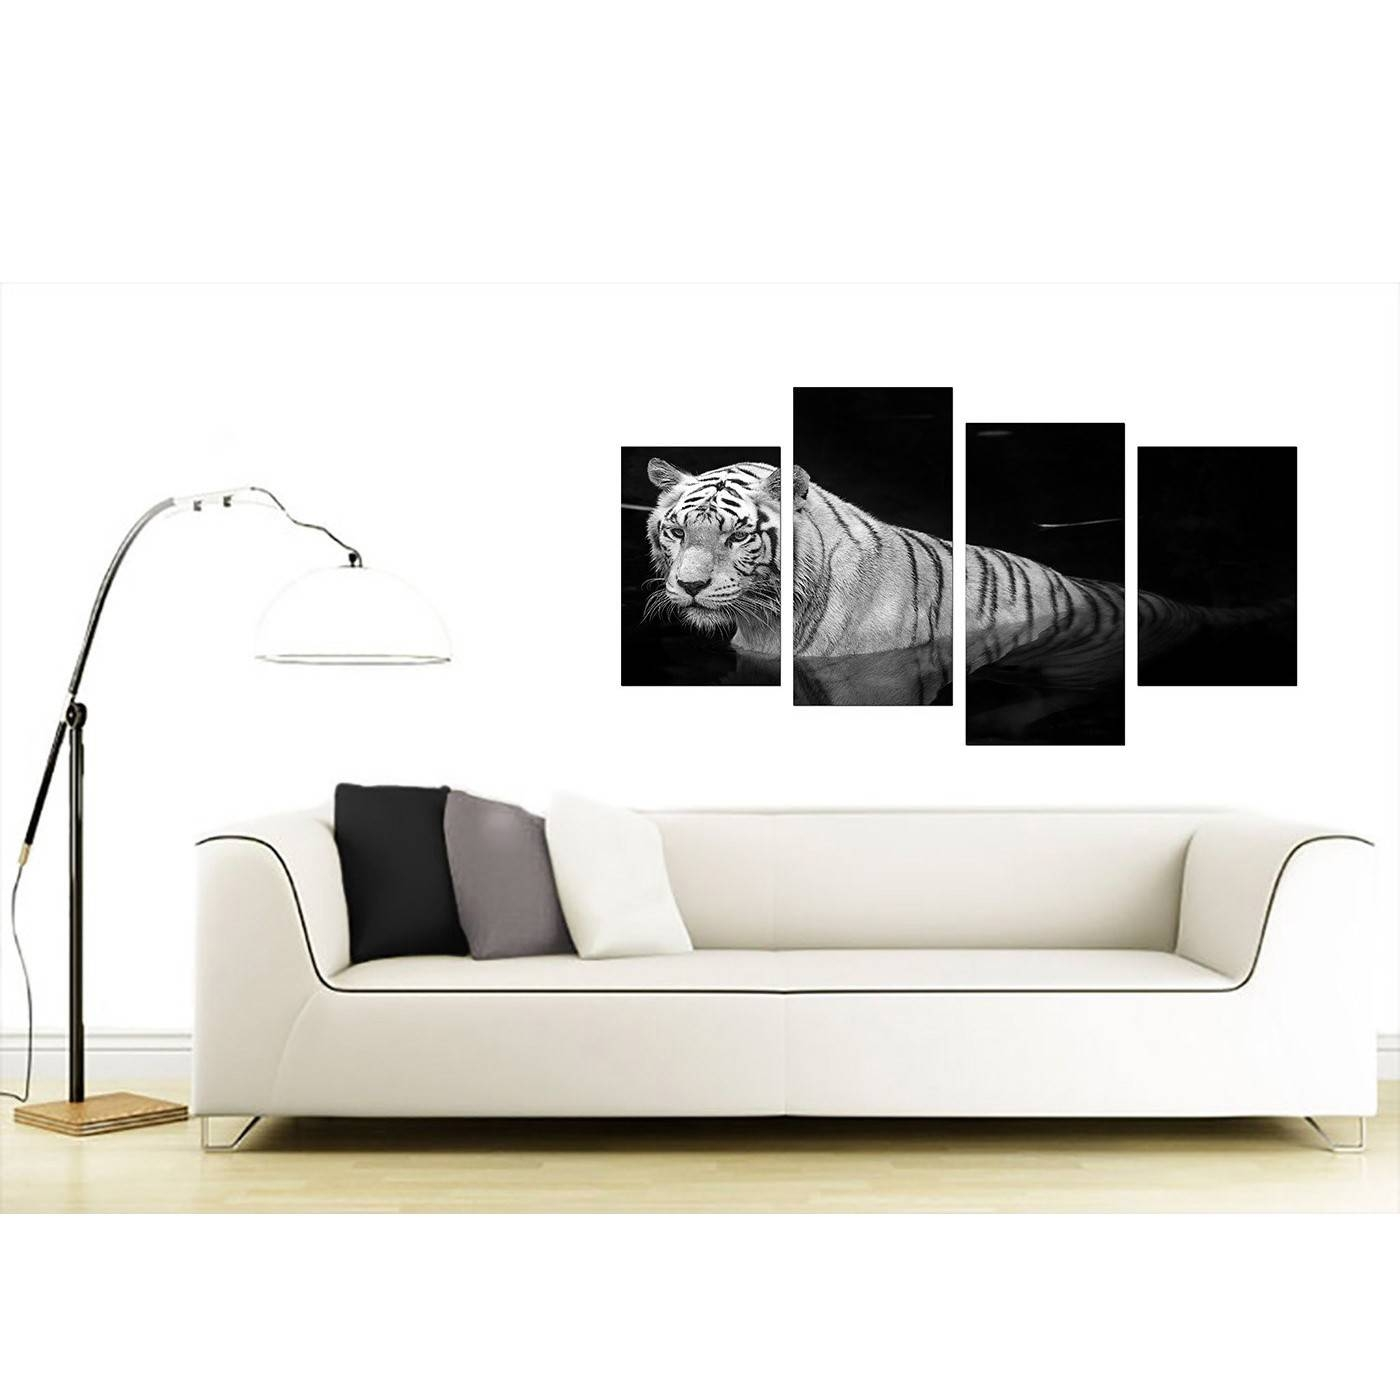 Black And White – Tiger Canvas Wall Art – For Bedroom Throughout Most Recent Black And White Wall Art (View 3 of 16)